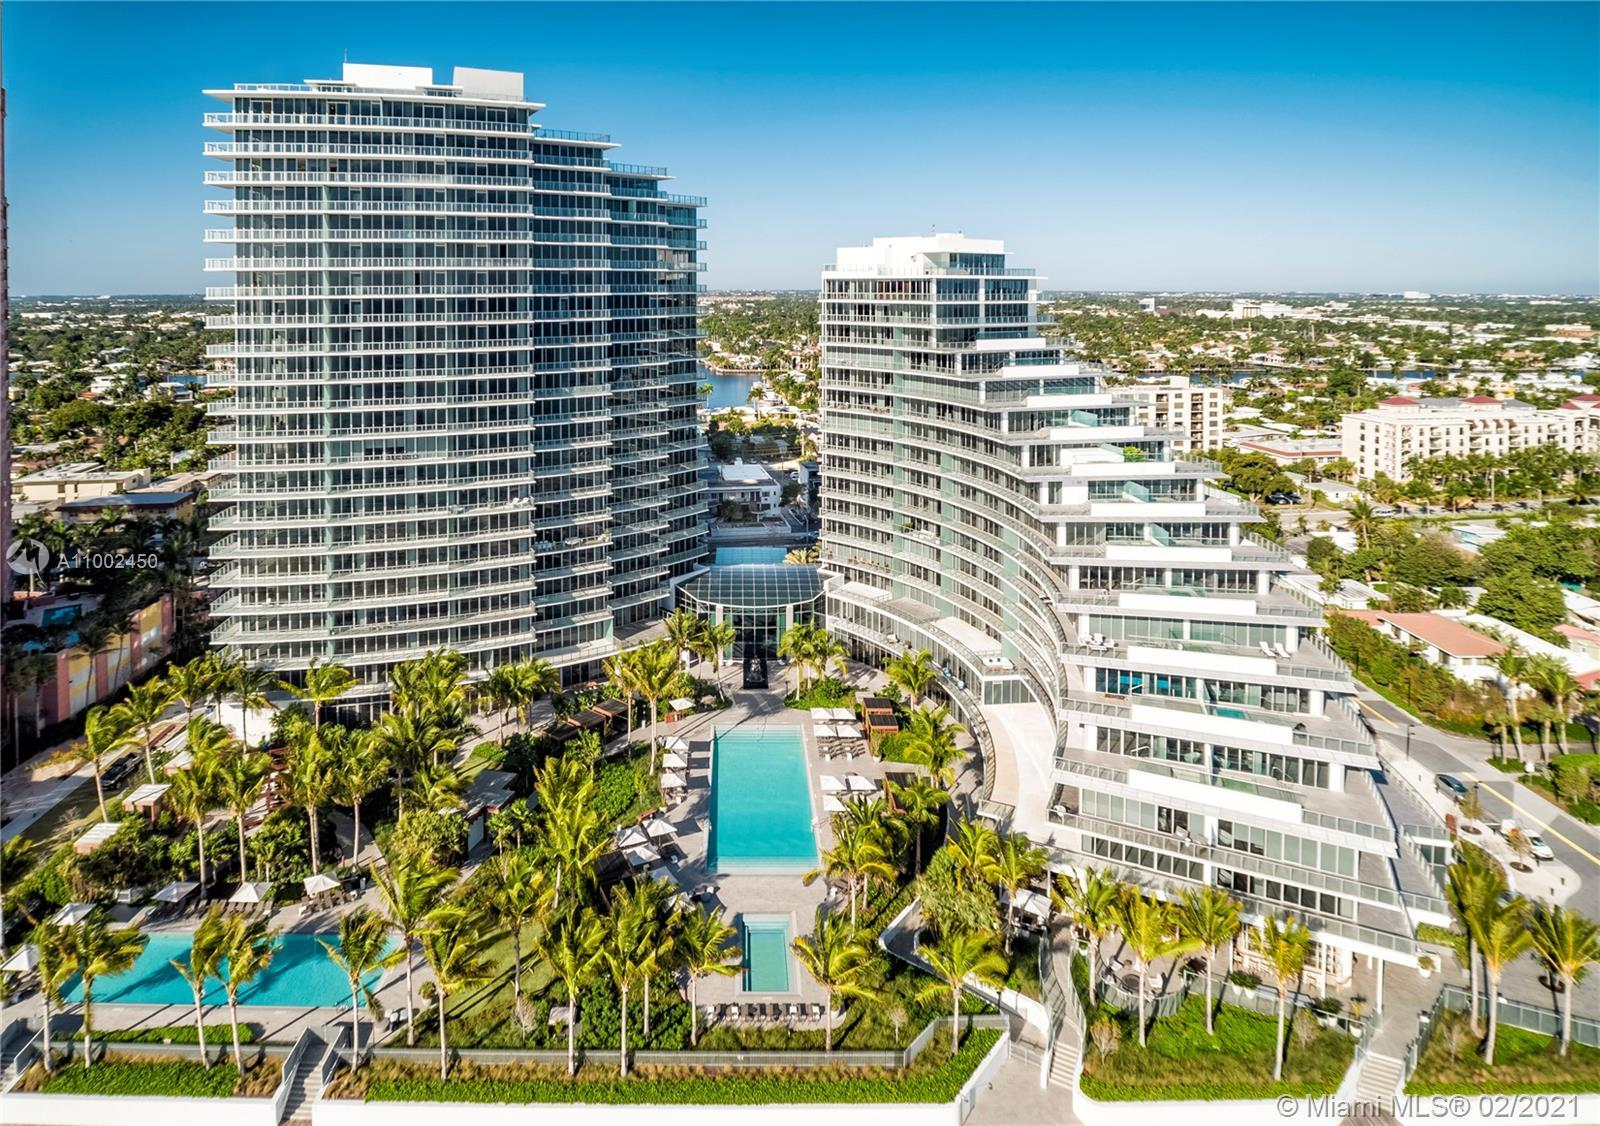 N604 RESIDENCE ARRIVES INTO YOUR PRIVATE ELEVATOR TO EXPERIENCE A GOREGOUS NORTH OCEAN, INTRACOASTAL